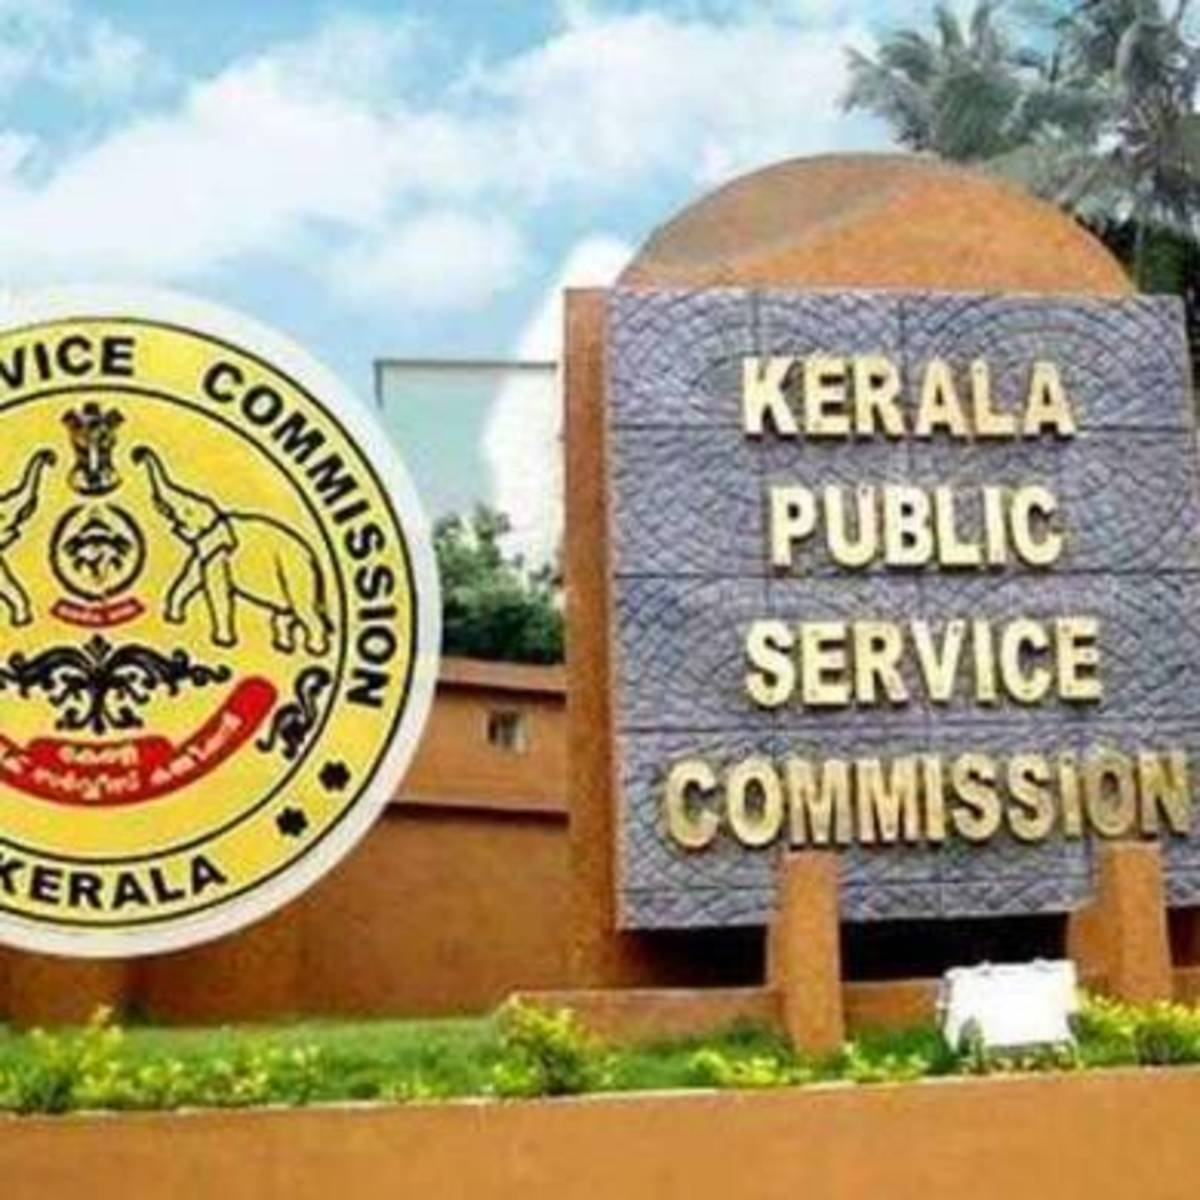 Kerala Public Service Commission Hiring Village Extension Officers Across 14 Districts - Apply now